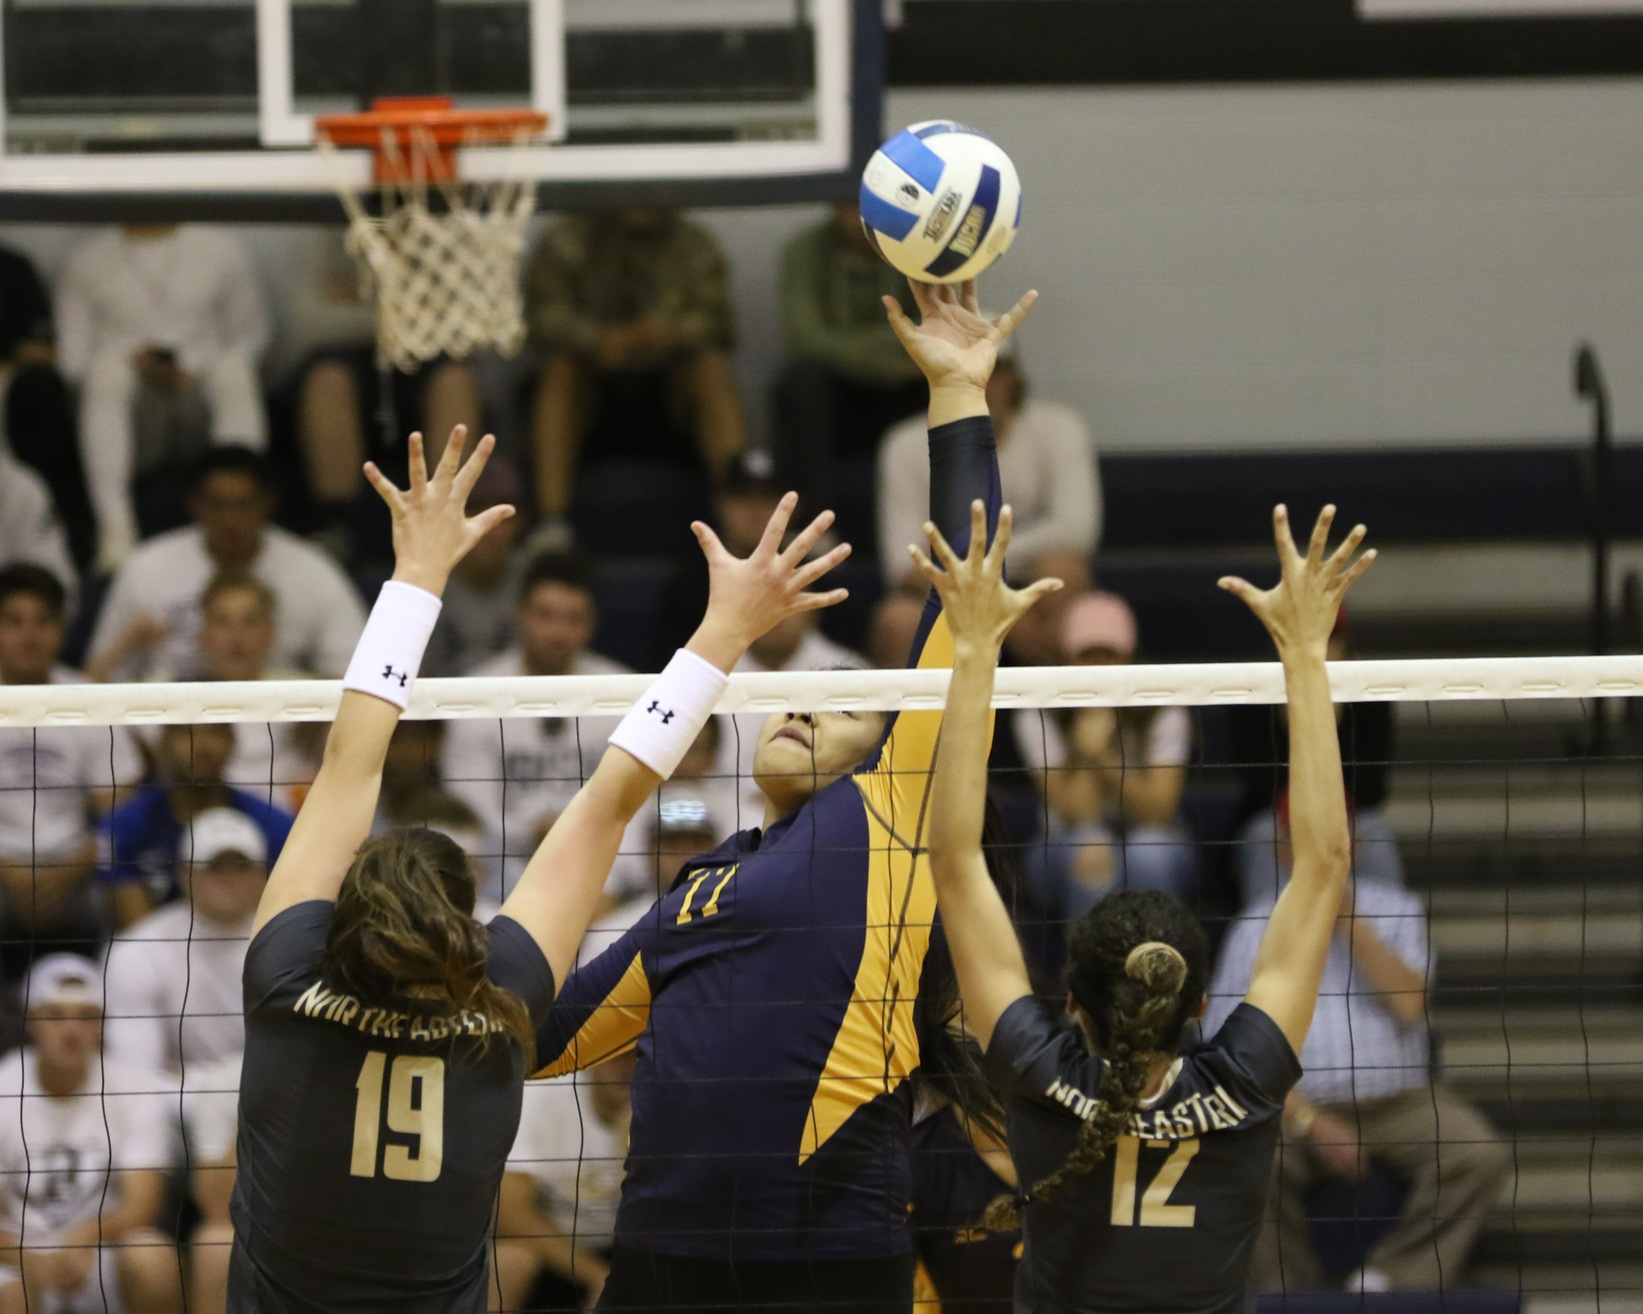 WNCC falls to NJC, still alive for national tourney berth